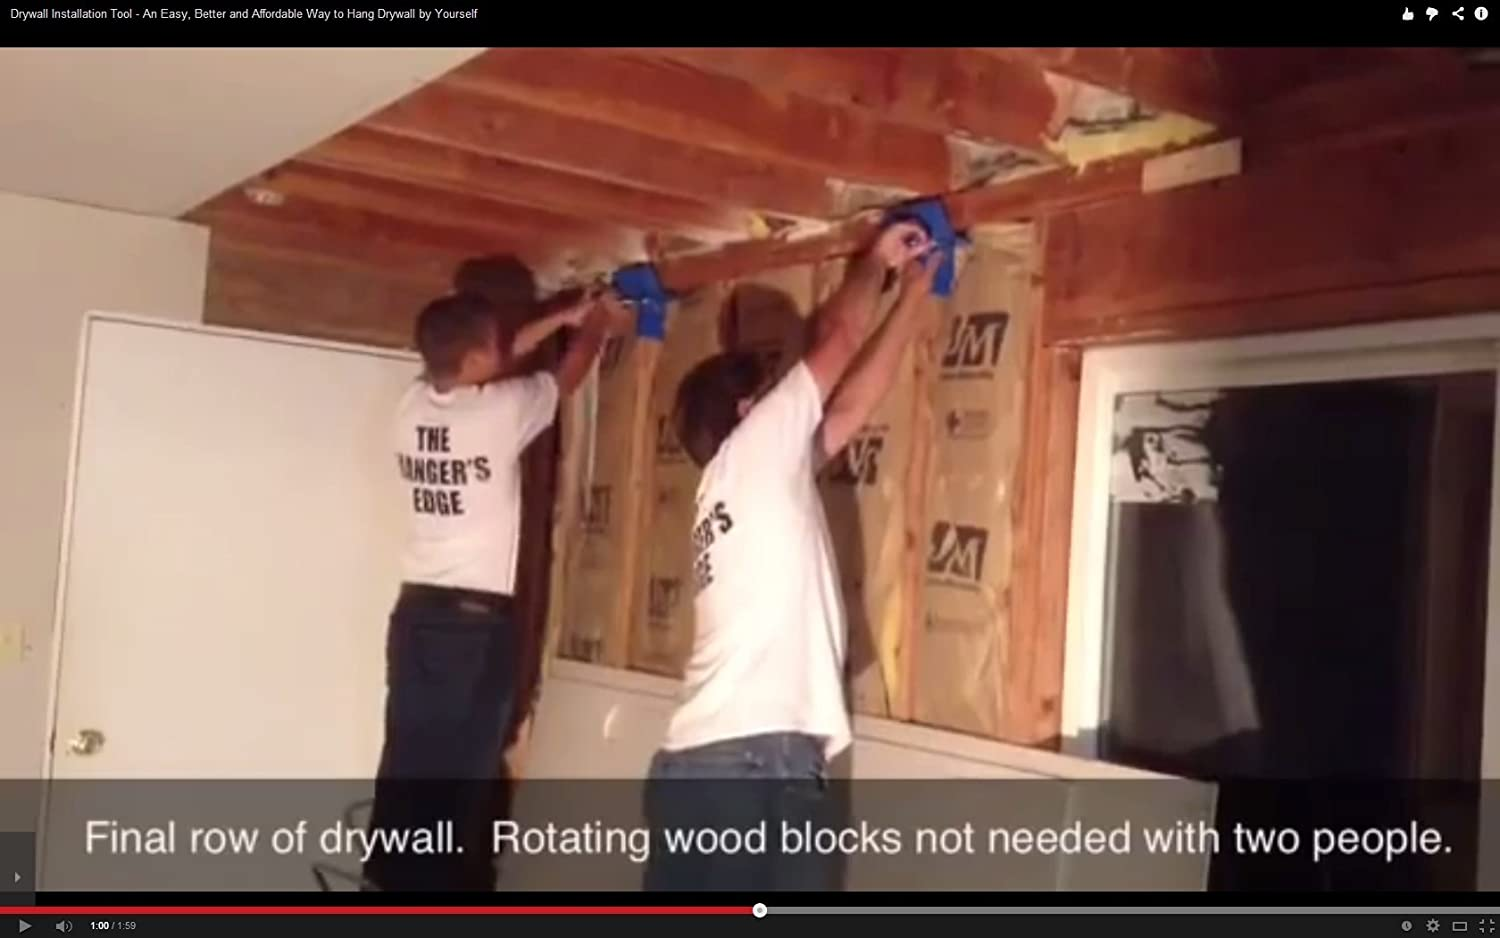 How to hang drywall on walls - How To Hang Drywall On Walls 5